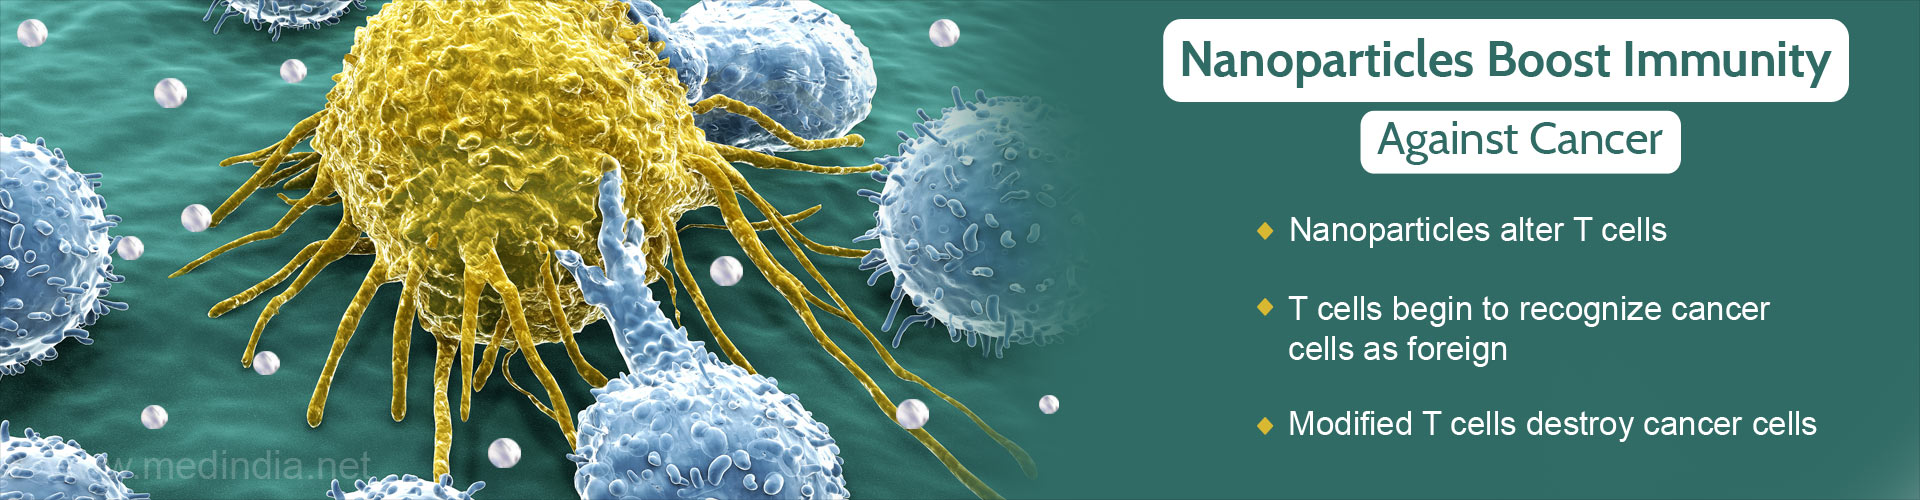 Nanoparticles Hold The Key to Boost Immune Cells Against Cancer